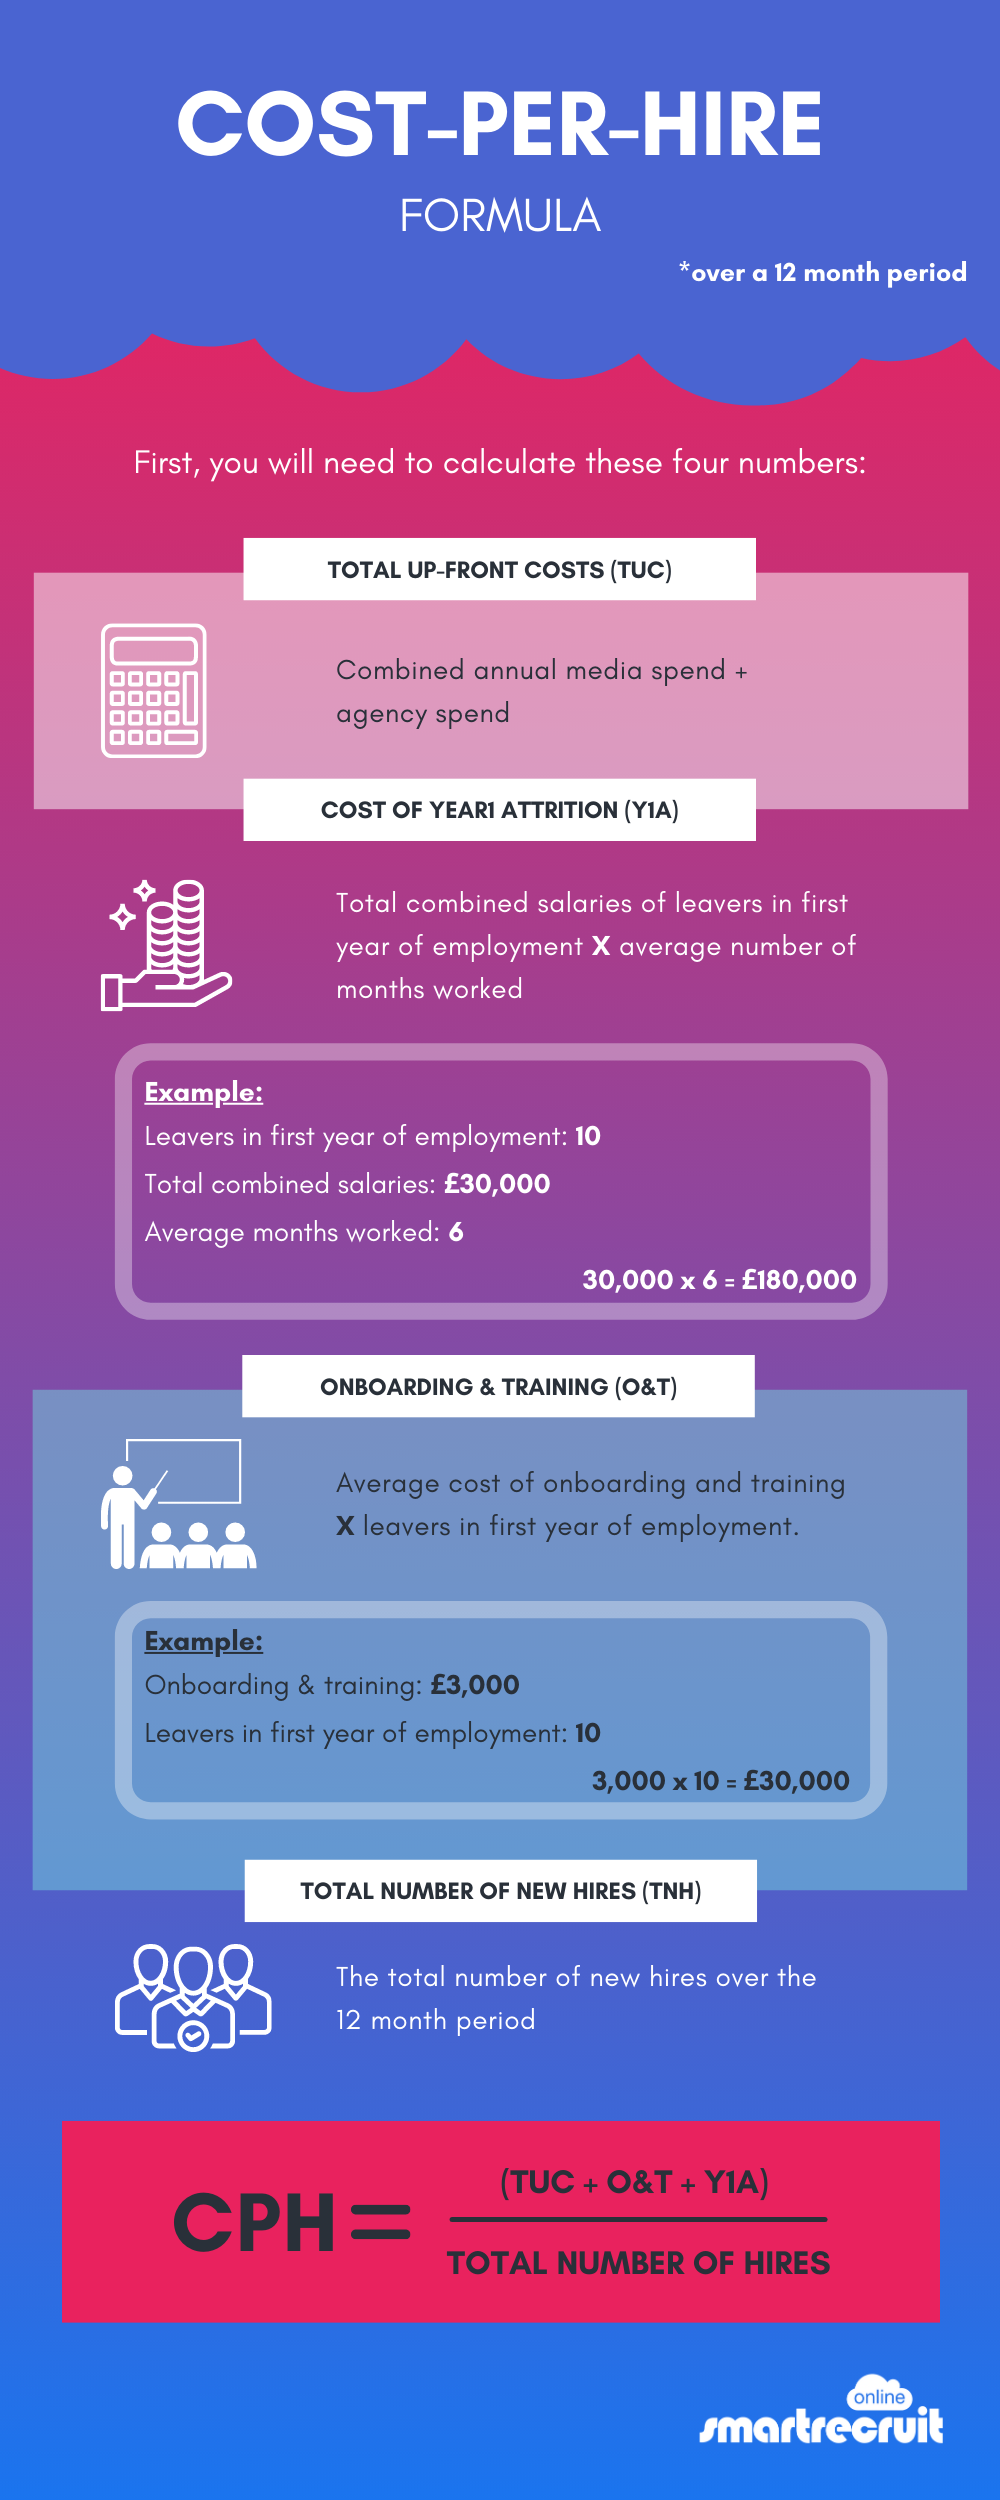 Infographic on how to calculate cost-per-hire